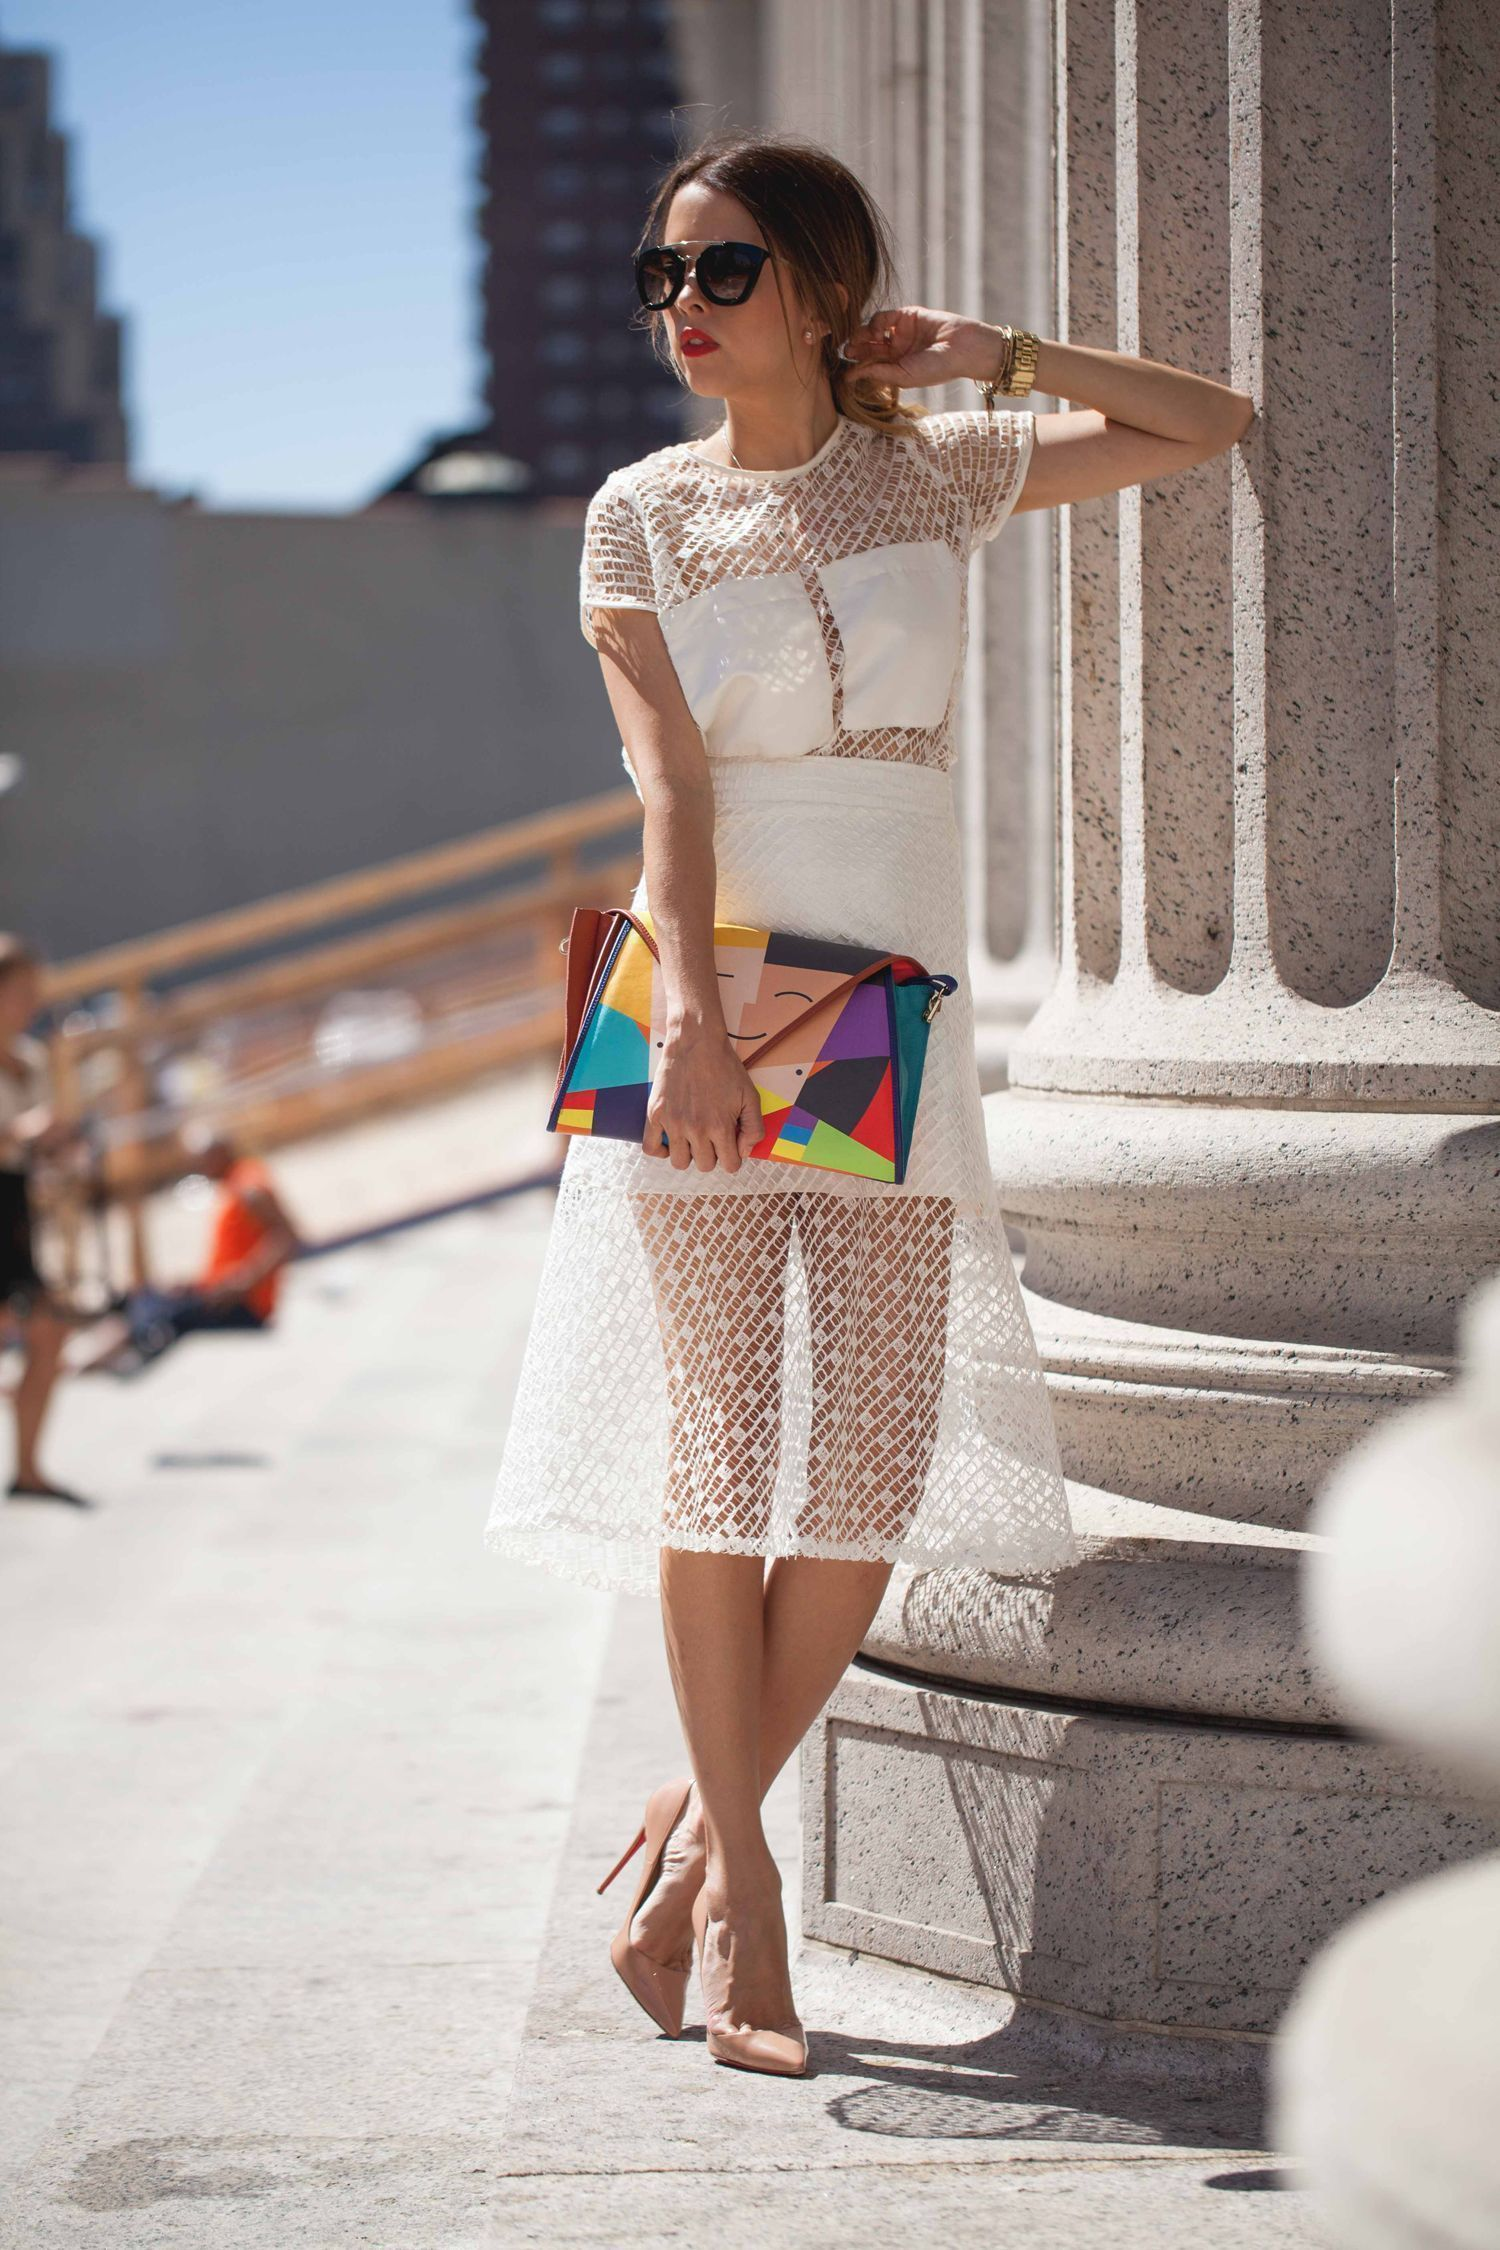 """Foto: Reprodução / <a href=""""http://ourfavoritestyle.com/outfits/nyfw-day-5-badgley-mischka-show-what-i-wore/"""" target=""""_blank"""">Our Favorite Style</a>"""